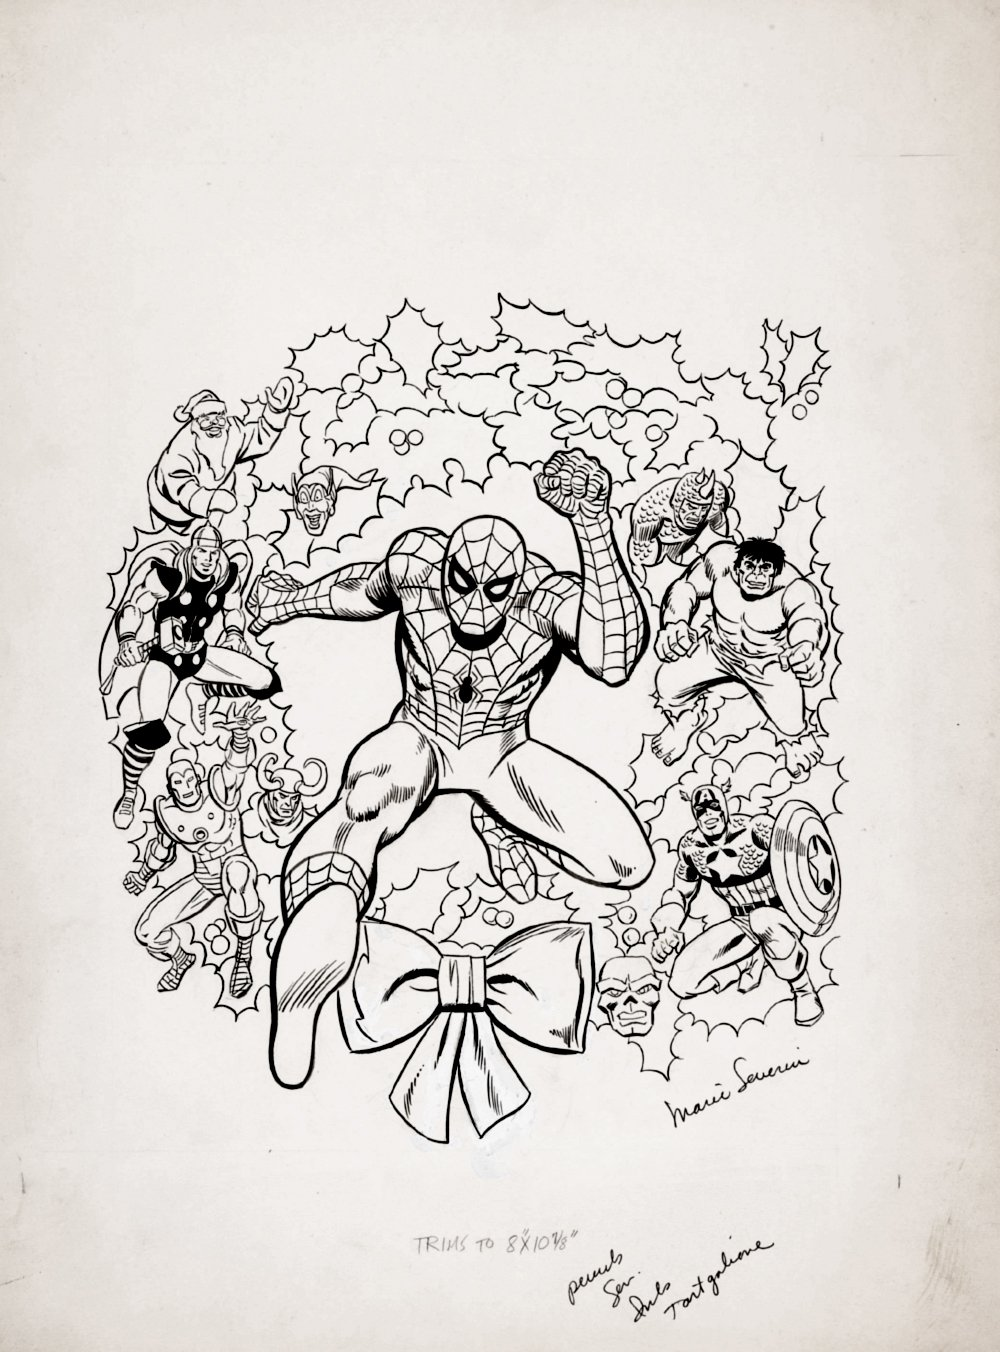 Marvel Christmas Coloring Book Cover (Spider-Man, Iron Man, Thor, Hulk, Captain America, Green Goblin, Loki, Red Skull, Rhino, Santa!) 1984